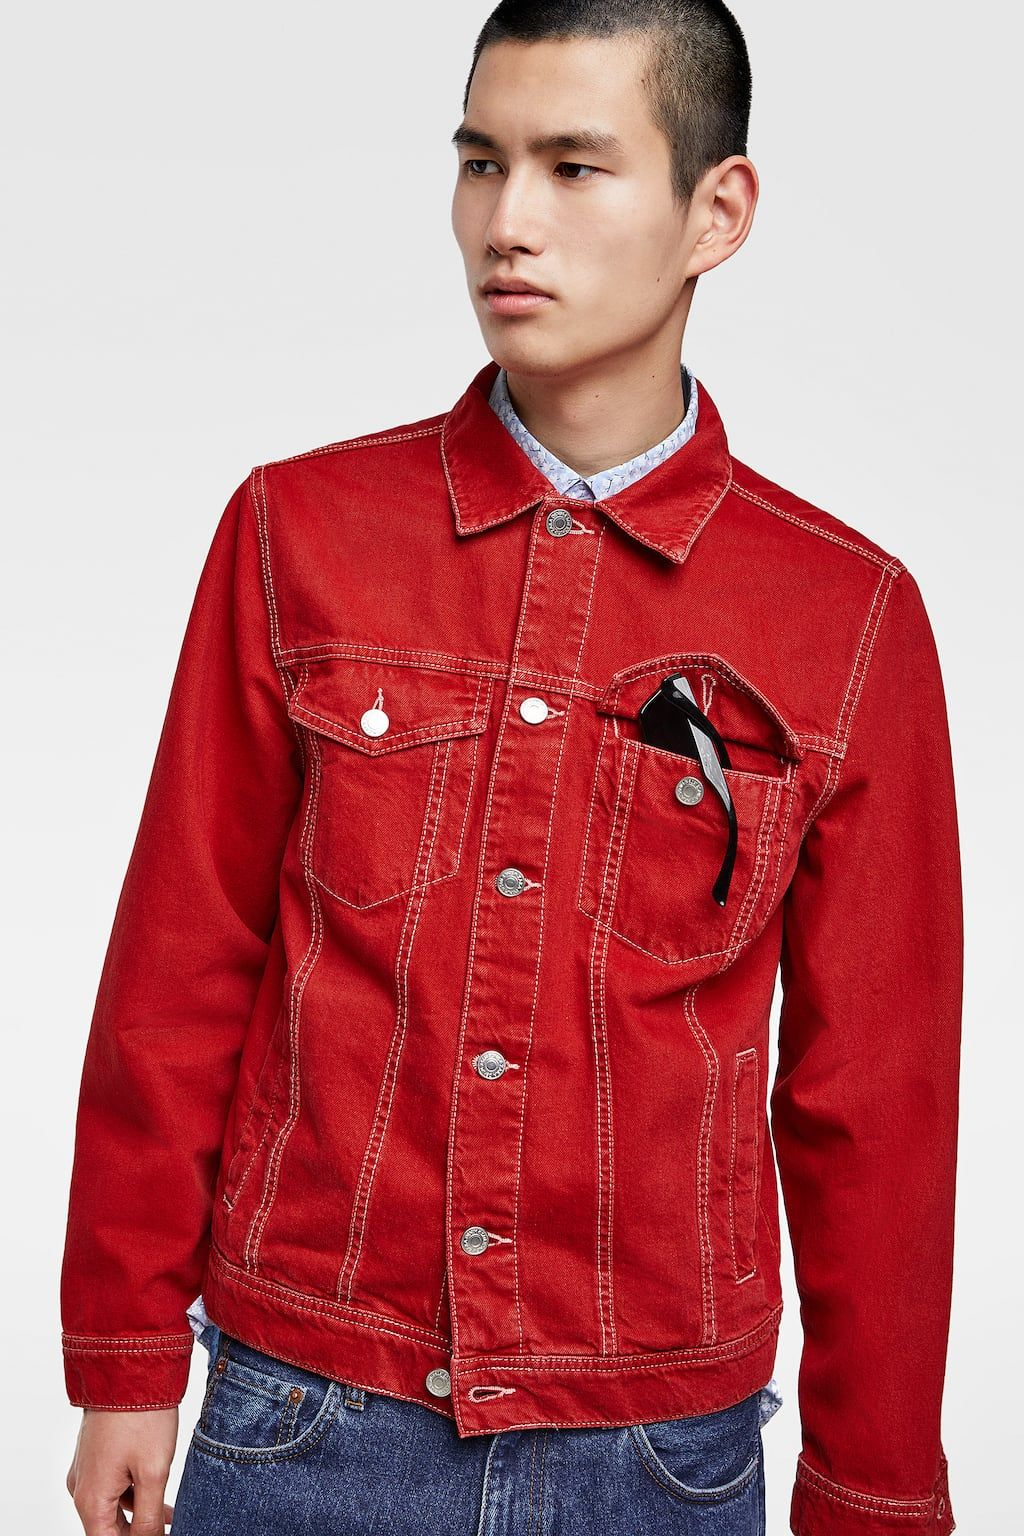 Denim jacket with topstitching Jackets, Denim, Leather